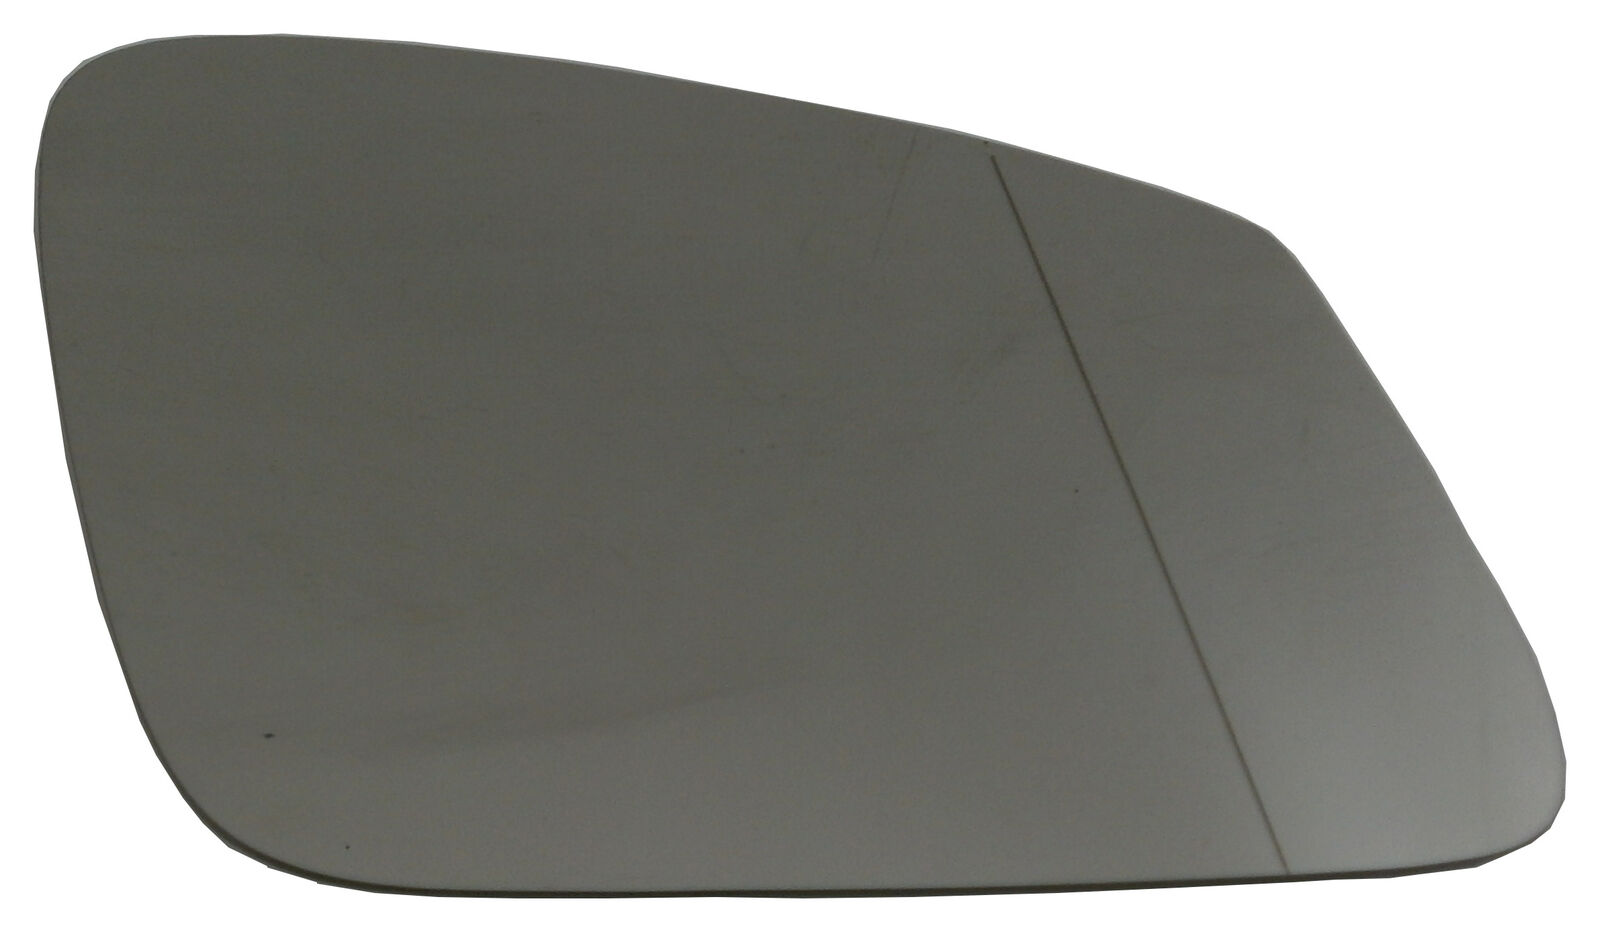 Trupart MG1168 Right Mirror Glass Heated Fits BMW 3 Series 328 01.15-On